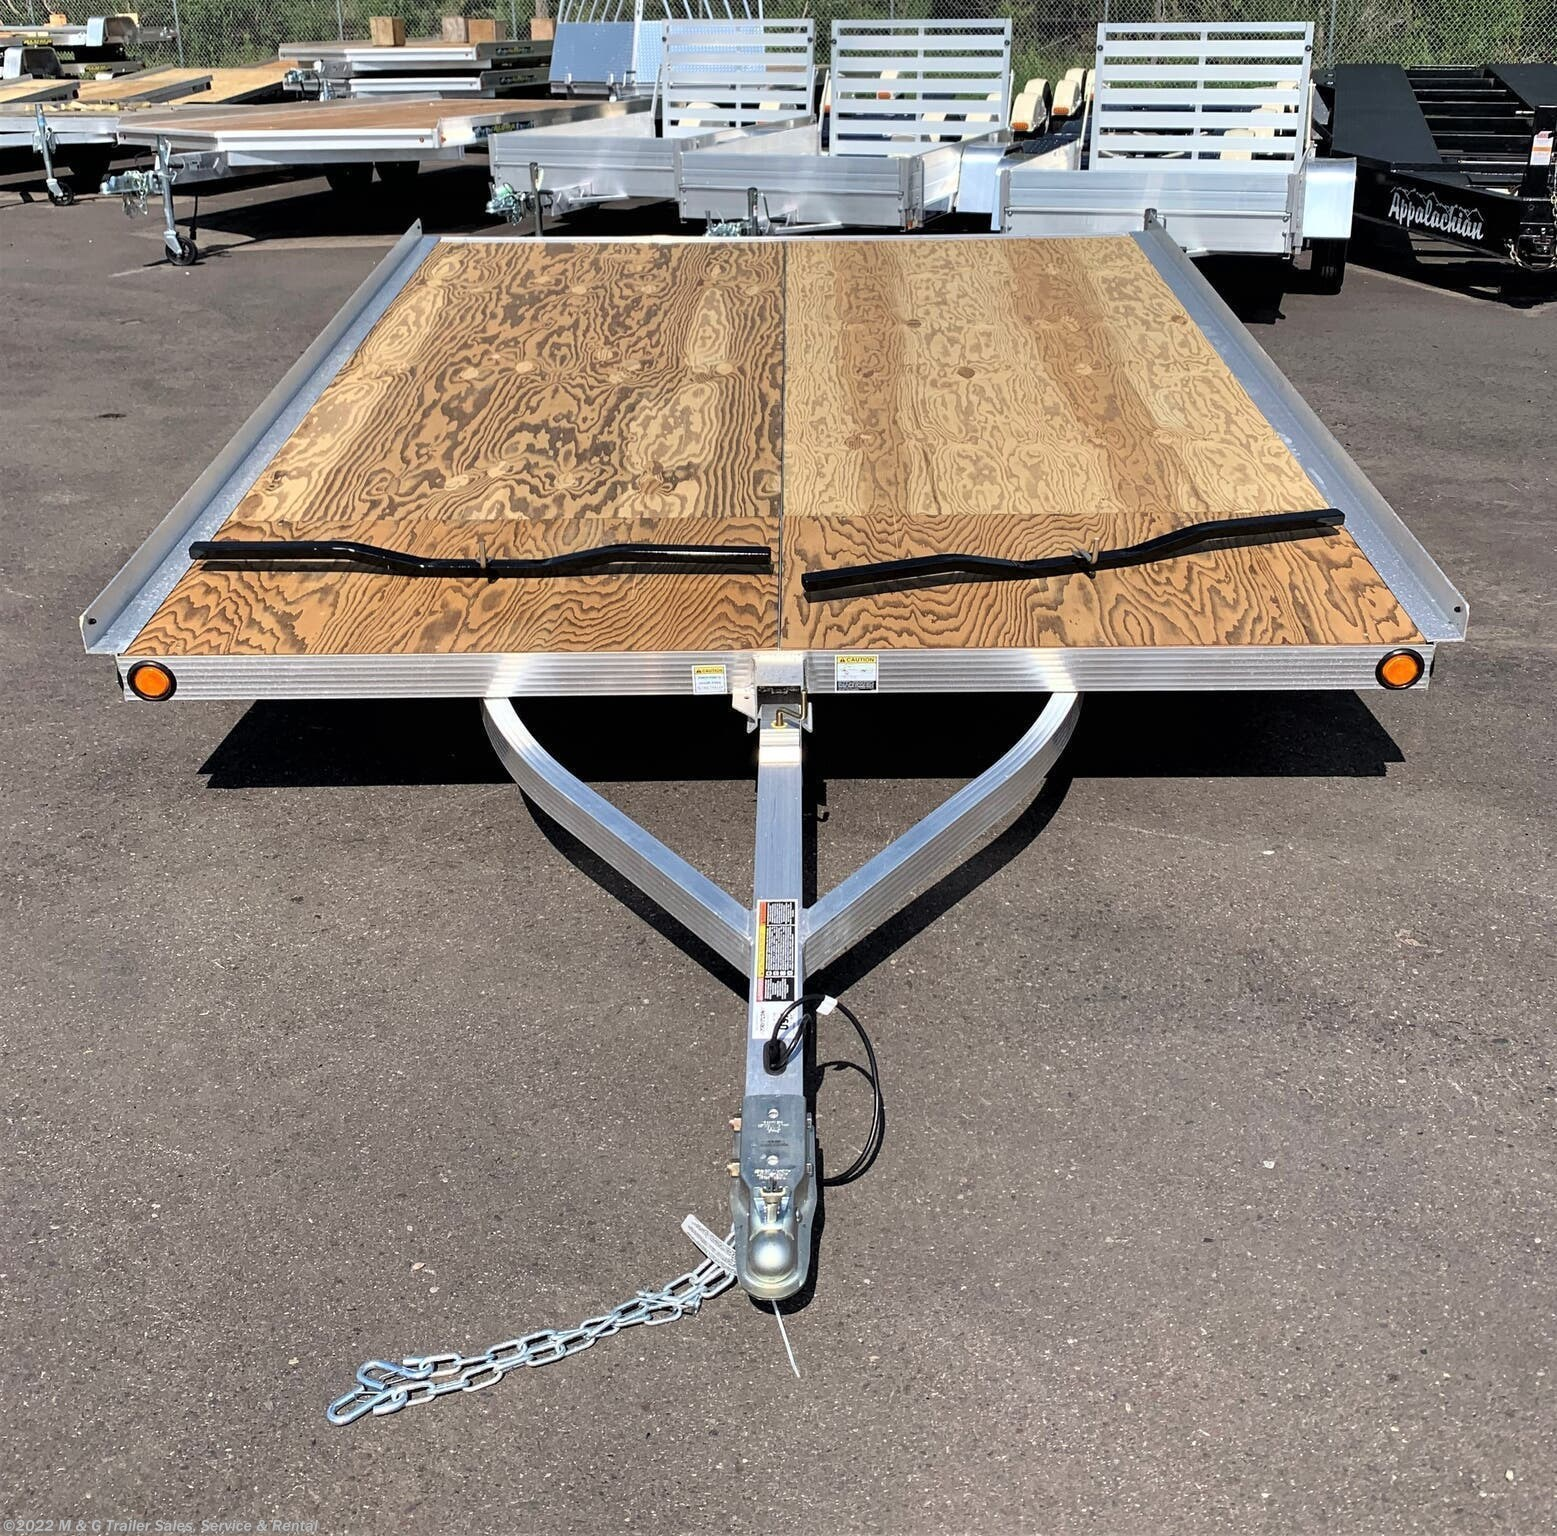 2021 Triton Trailers XT10-101 Tilt 2 Place Snowmobile Trailer - Stock #x56708